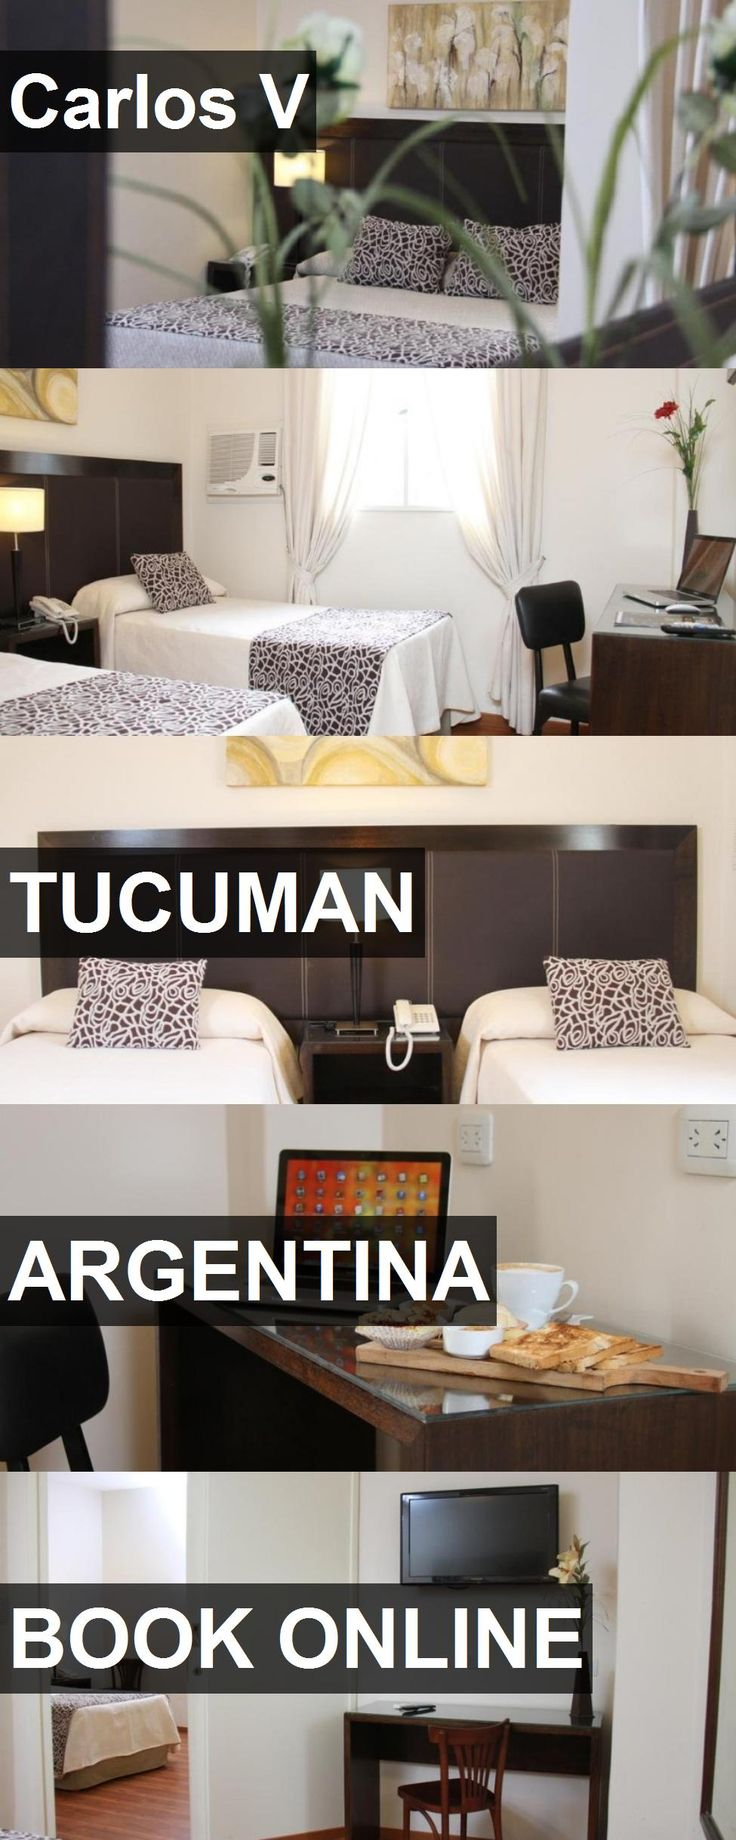 Hotel Carlos V in Tucuman, Argentina. For more information, photos, reviews and best prices please follow the link. #Argentina #Tucuman #CarlosV #hotel #travel #vacation